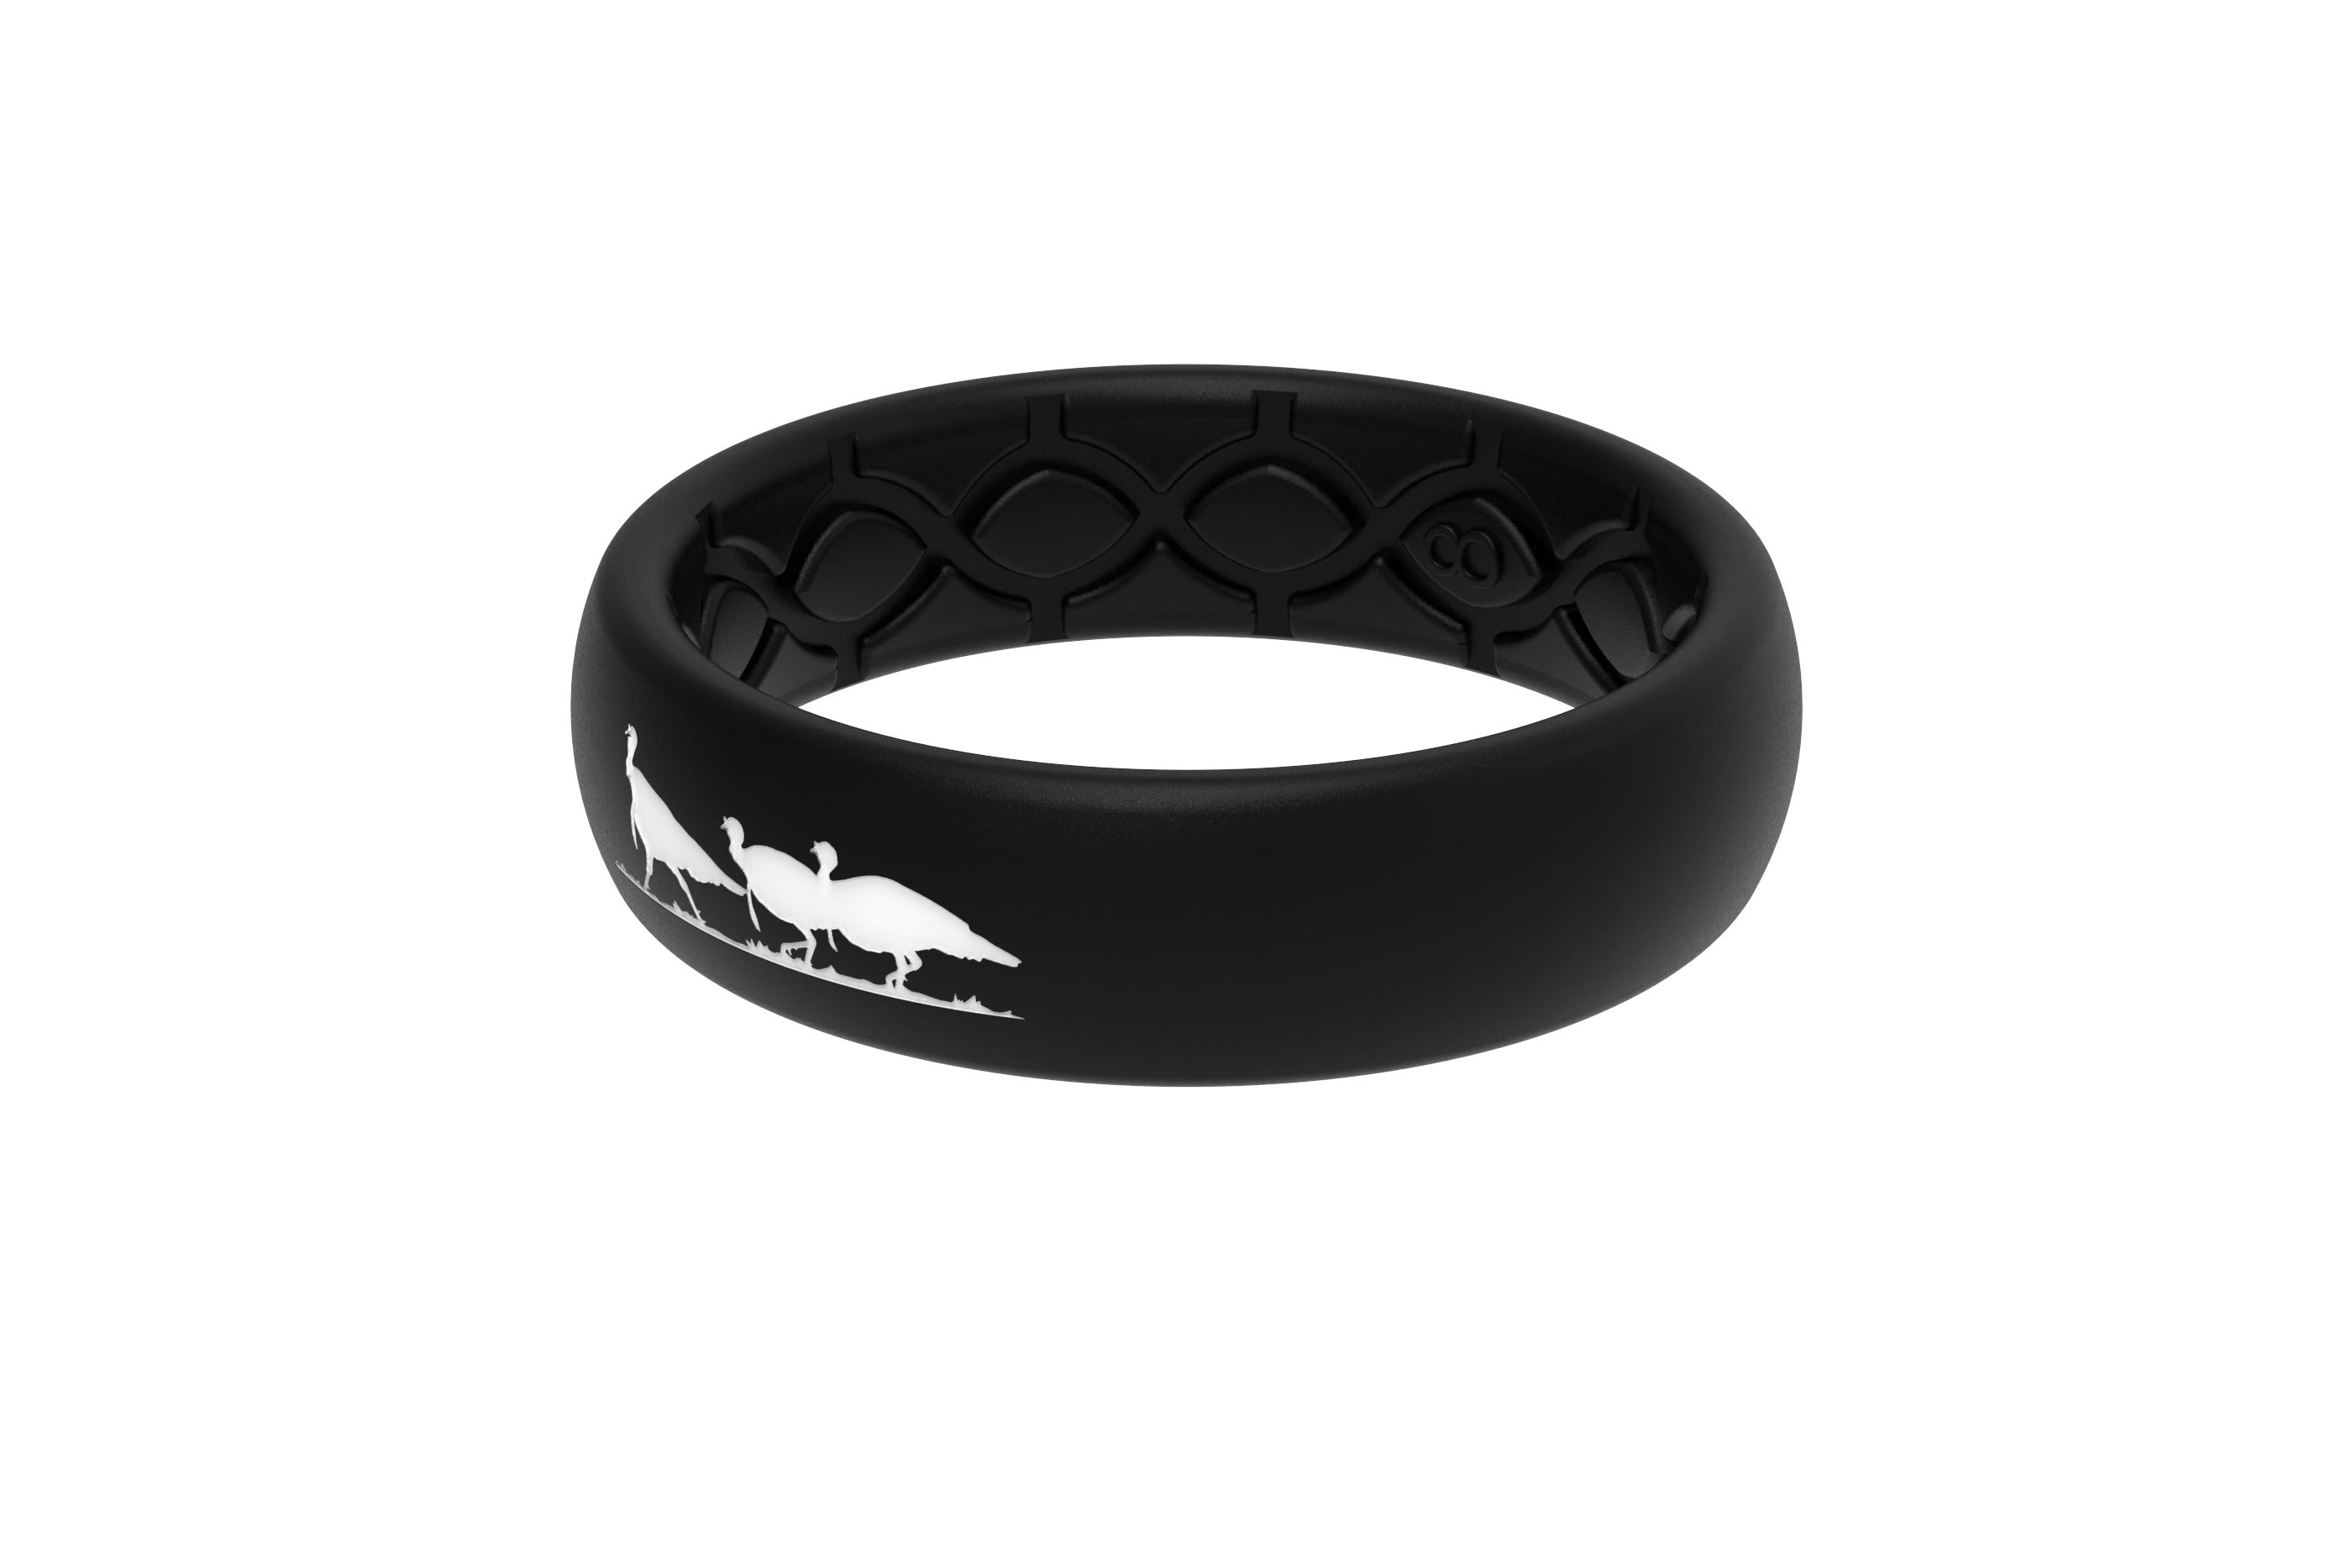 Thin NWTF Black Logo -  viewed from side